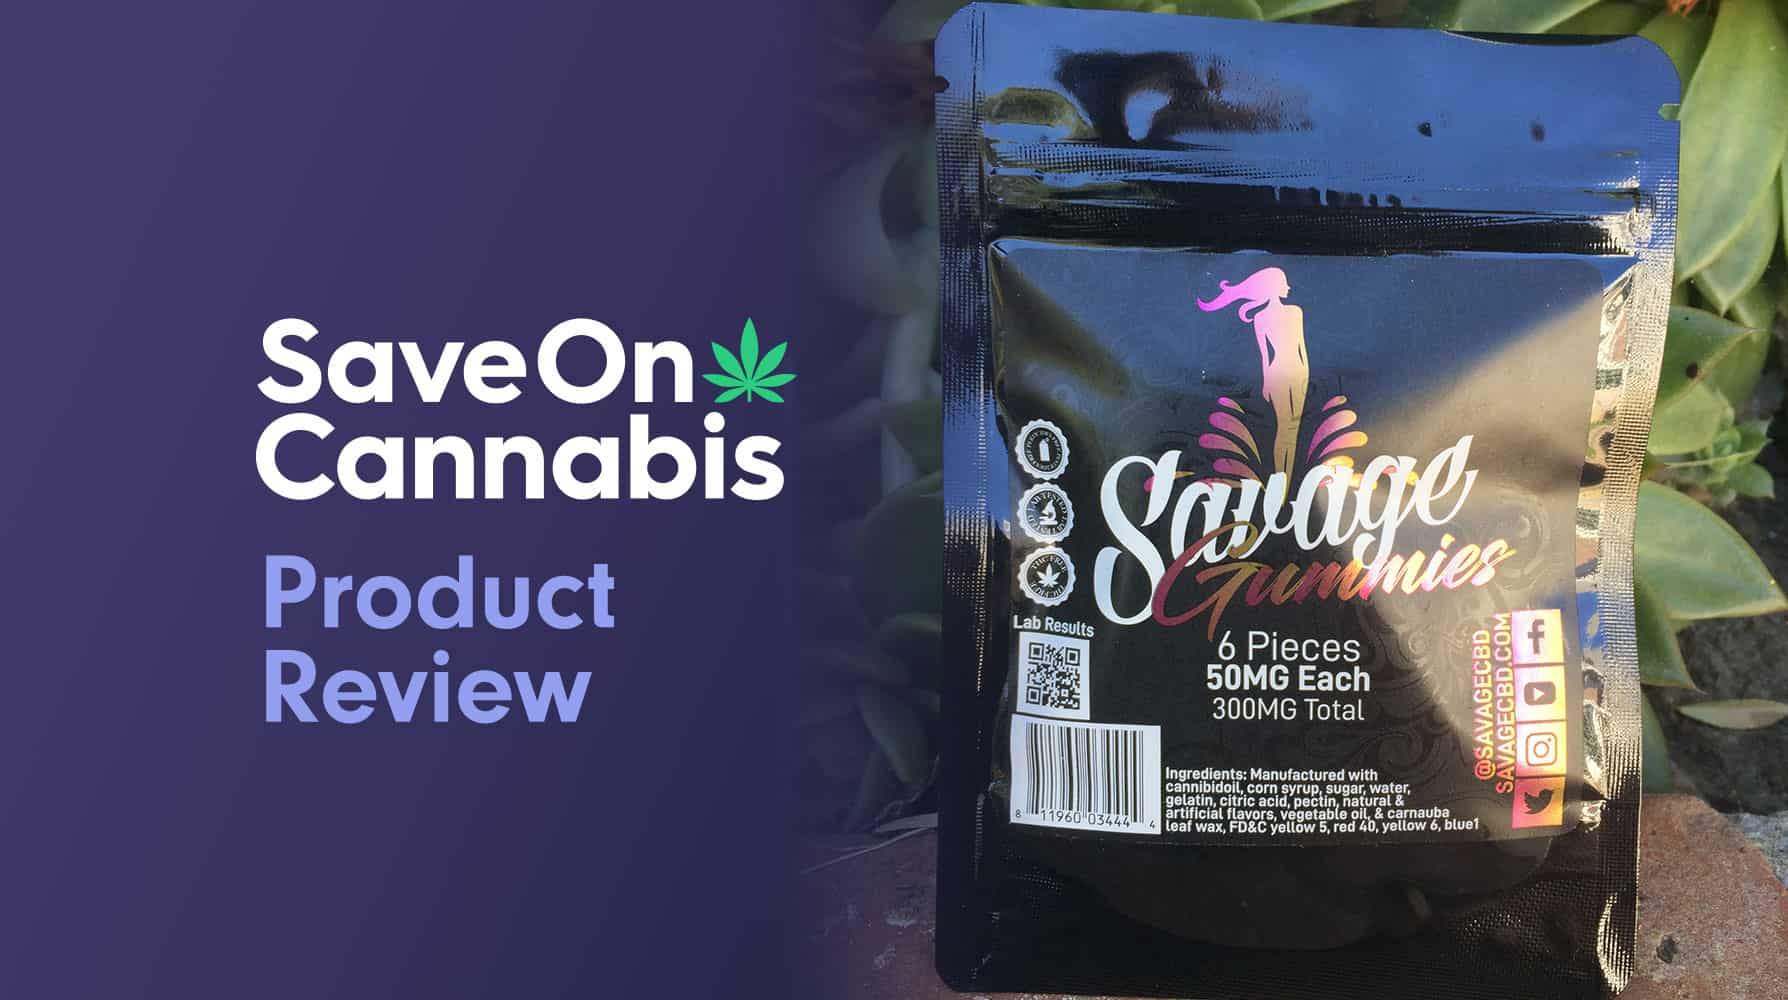 savage cbd driven Gummies review save on cannabis website redesigned